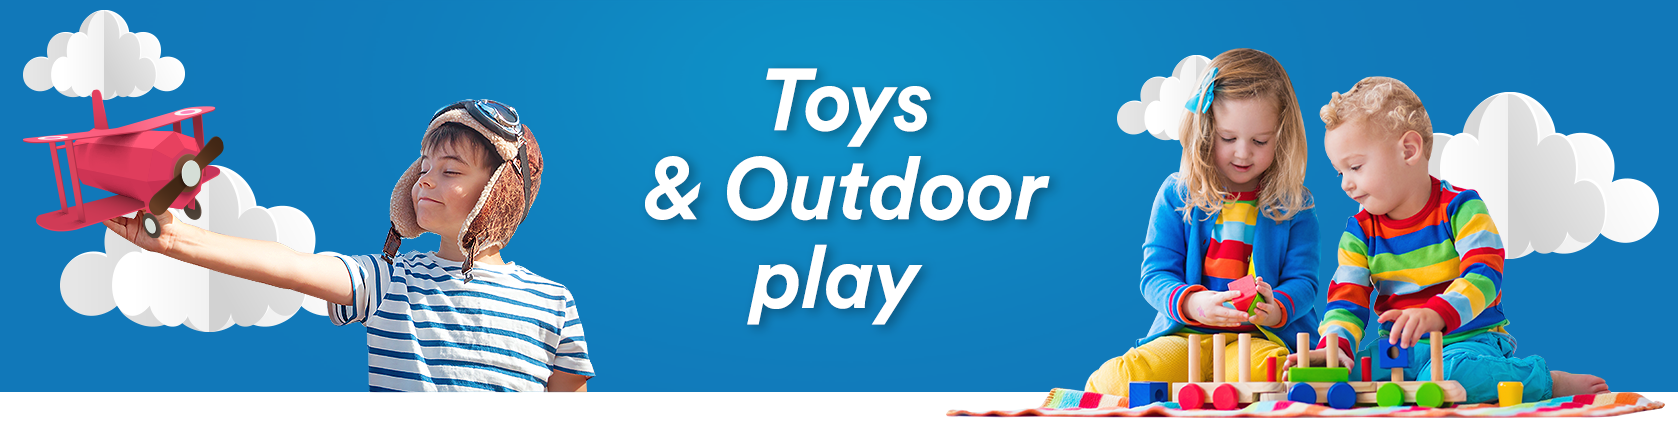 Toys & Outdoor play